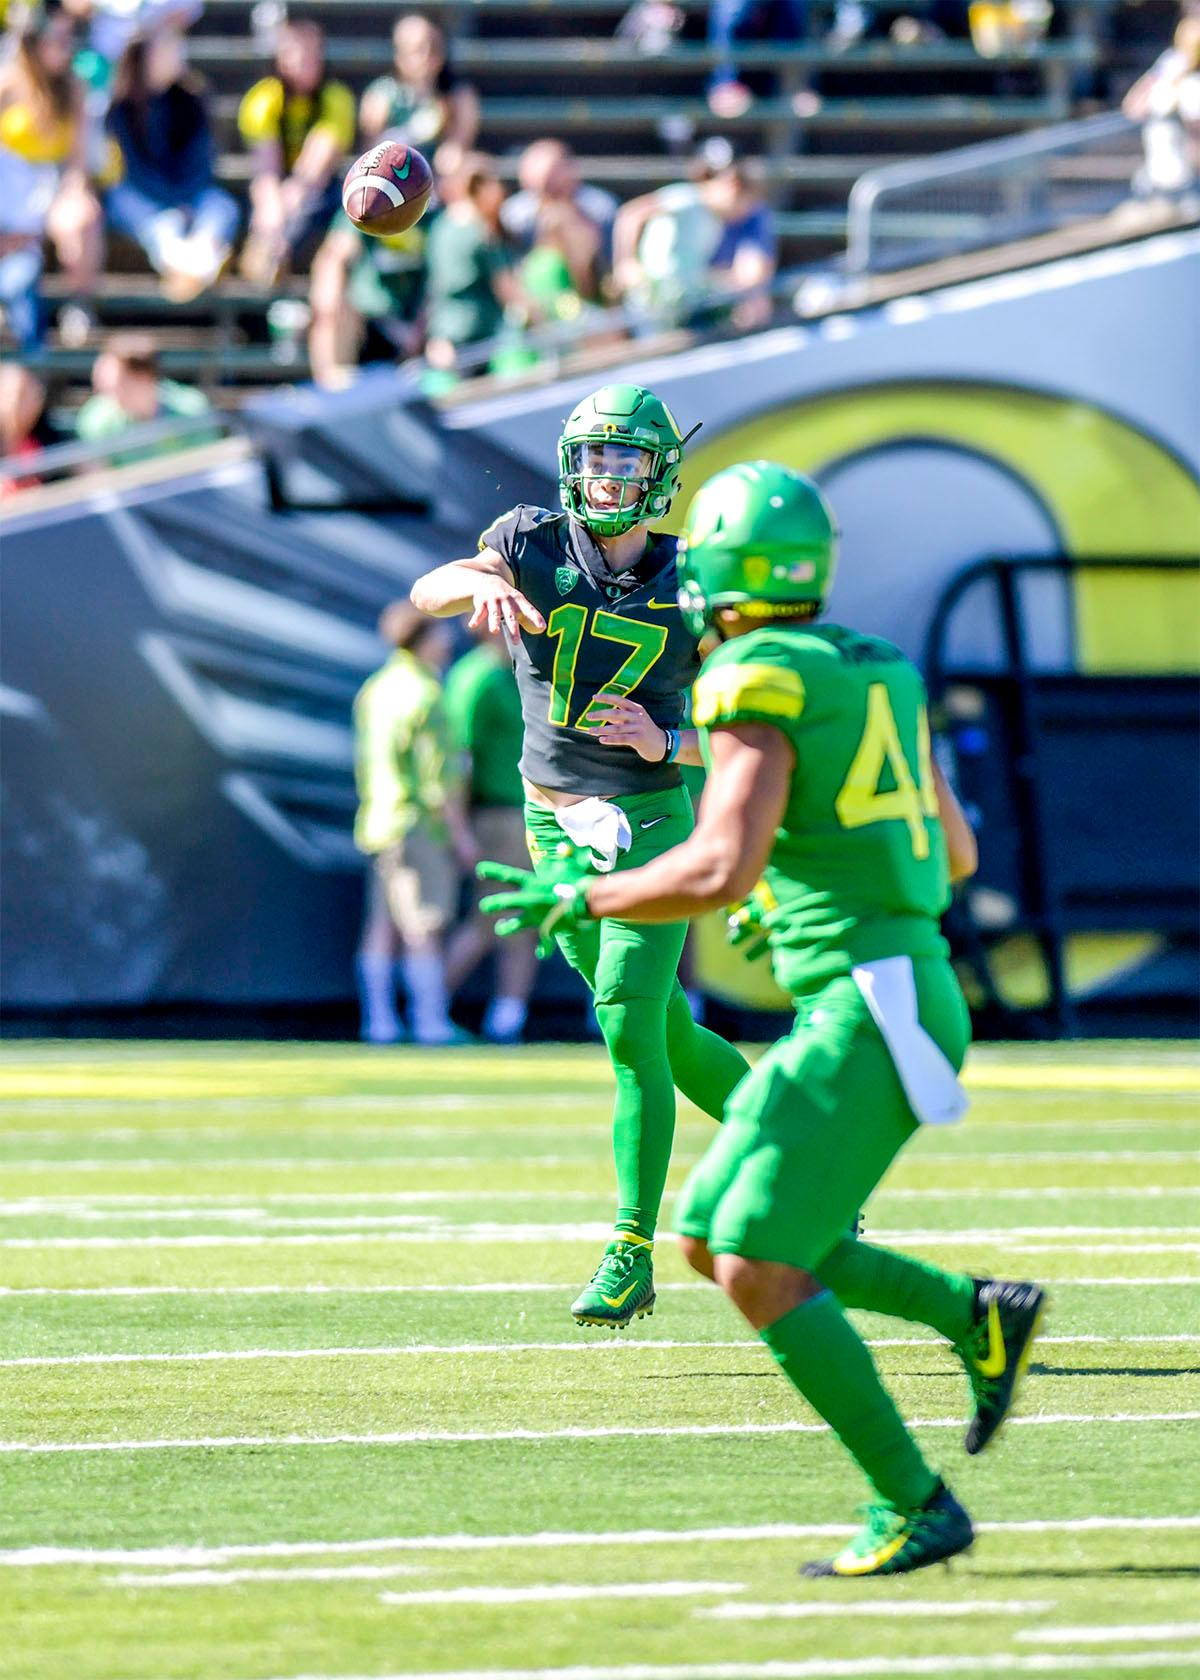 Mike Irwin (#17) passes the ball off to teammate D.J. Johnson (#44). The Thunder defeated the Lightning 59-24 in the Spring Game on Saturday at Autzen Stadium. Photo by August Frank